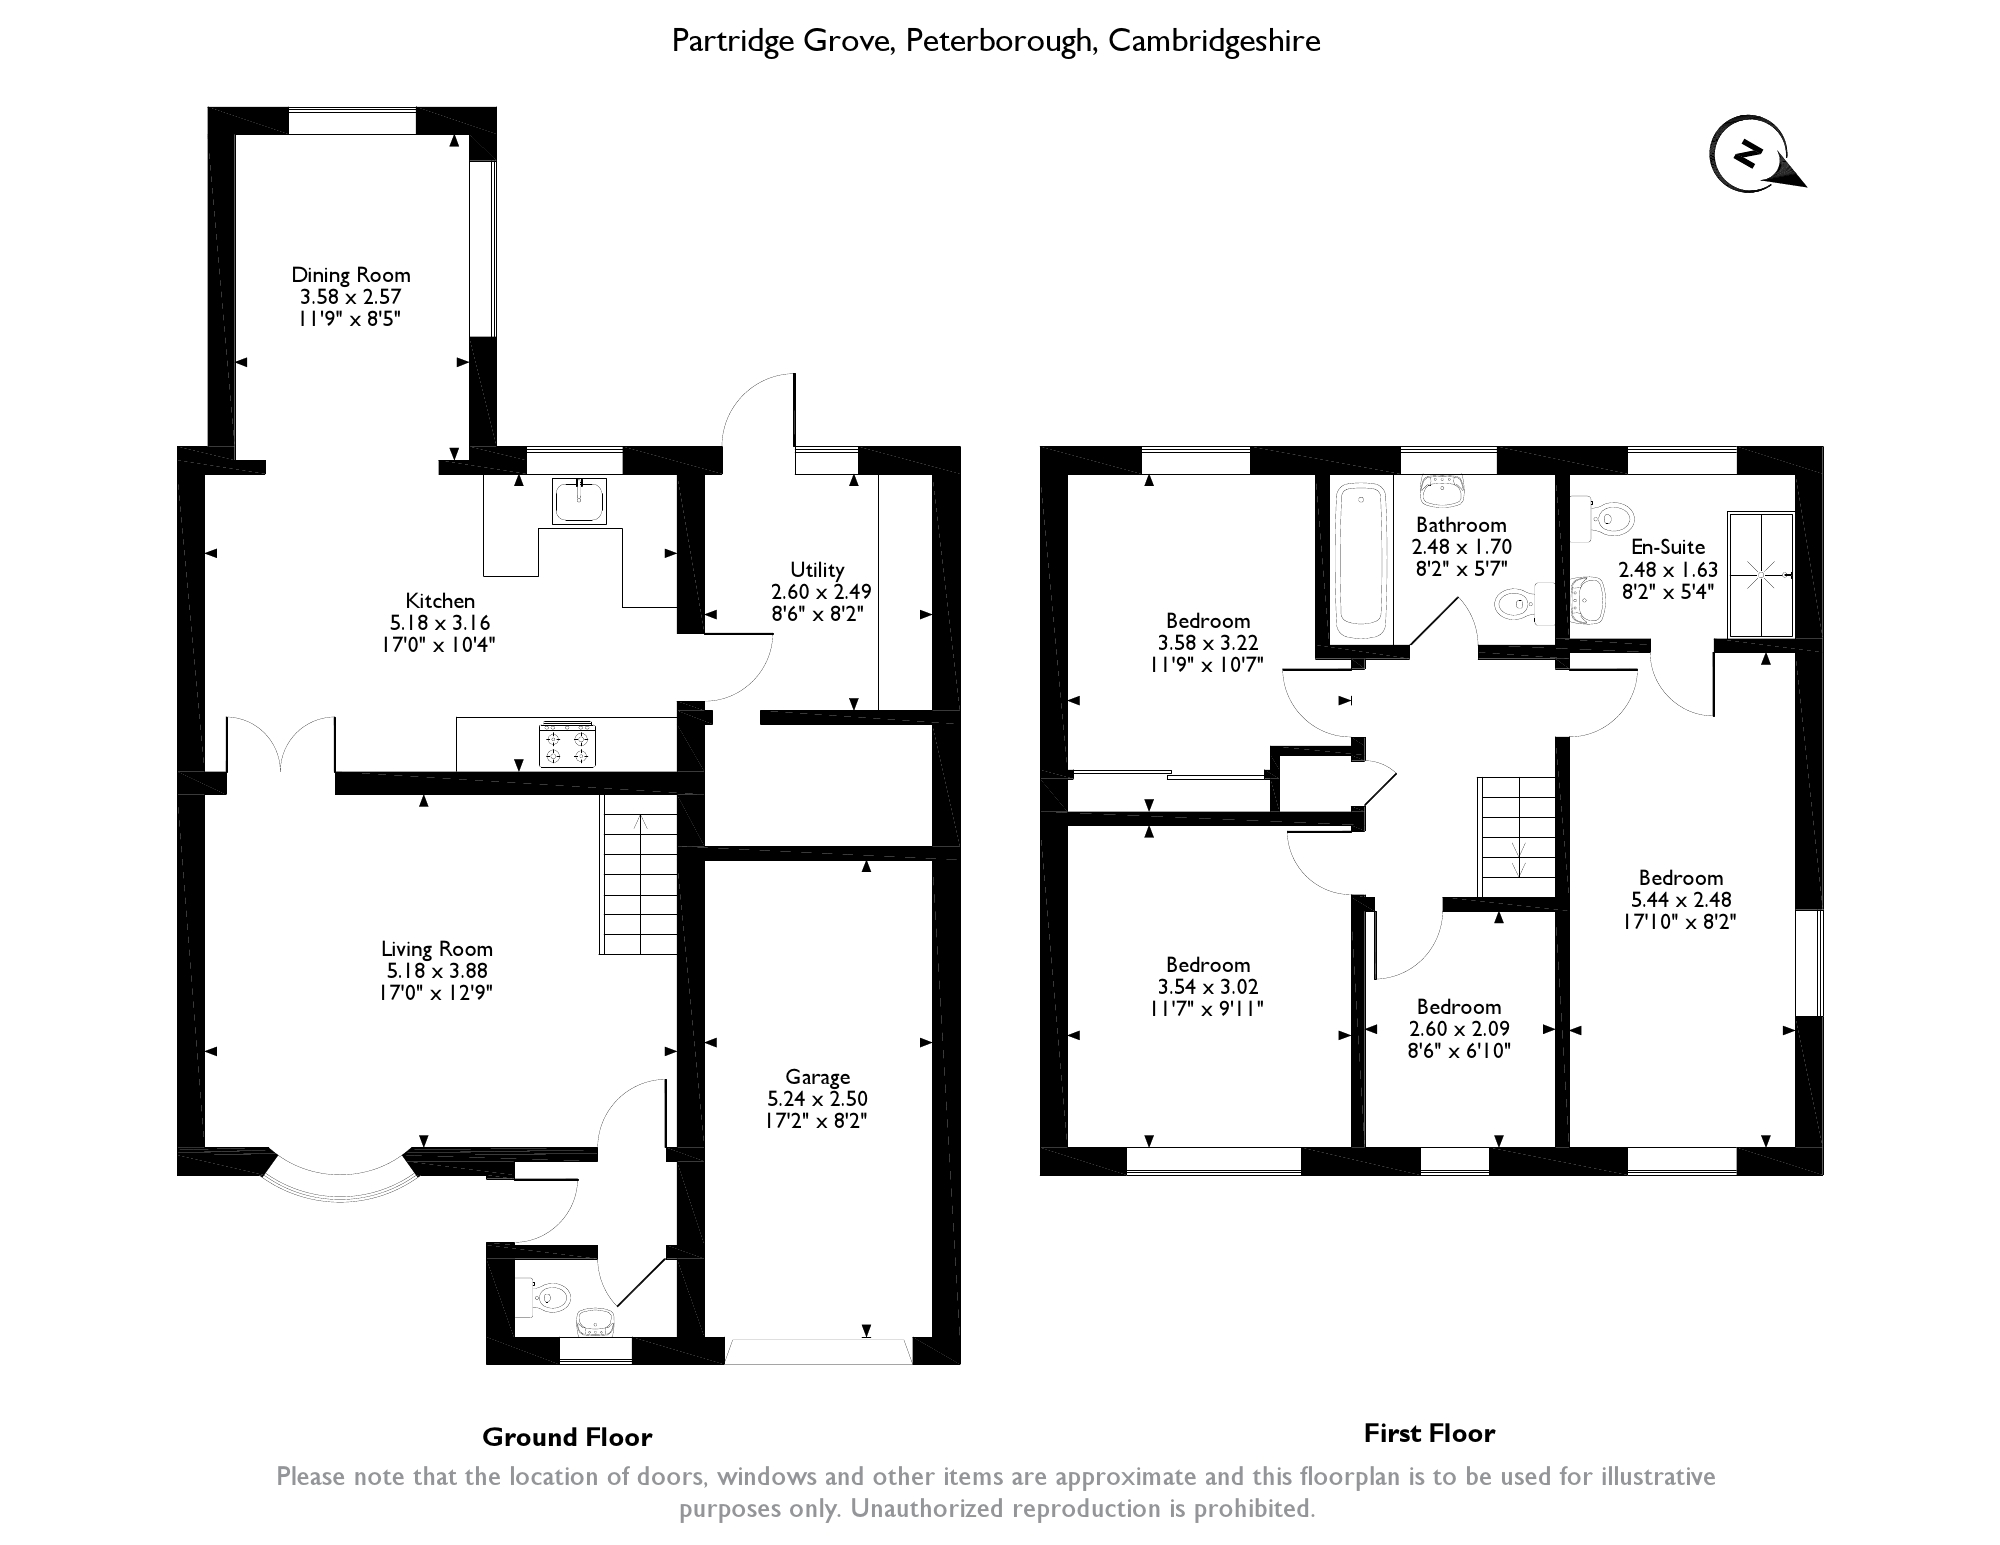 Partridge Grove, Peterborough floor plan